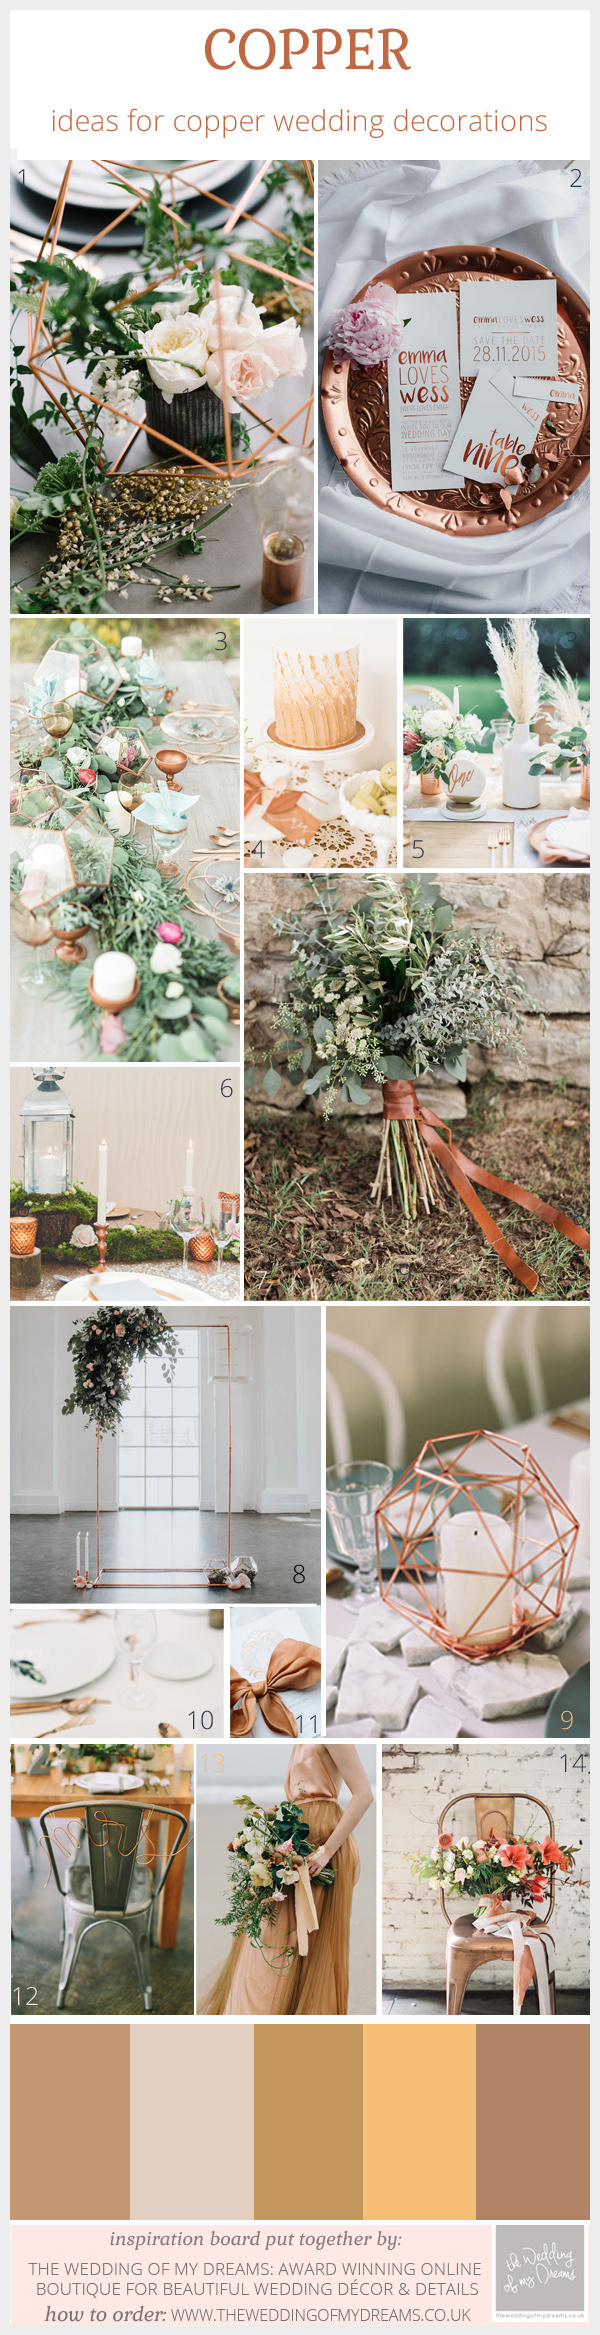 copper wedding decorations and ideas